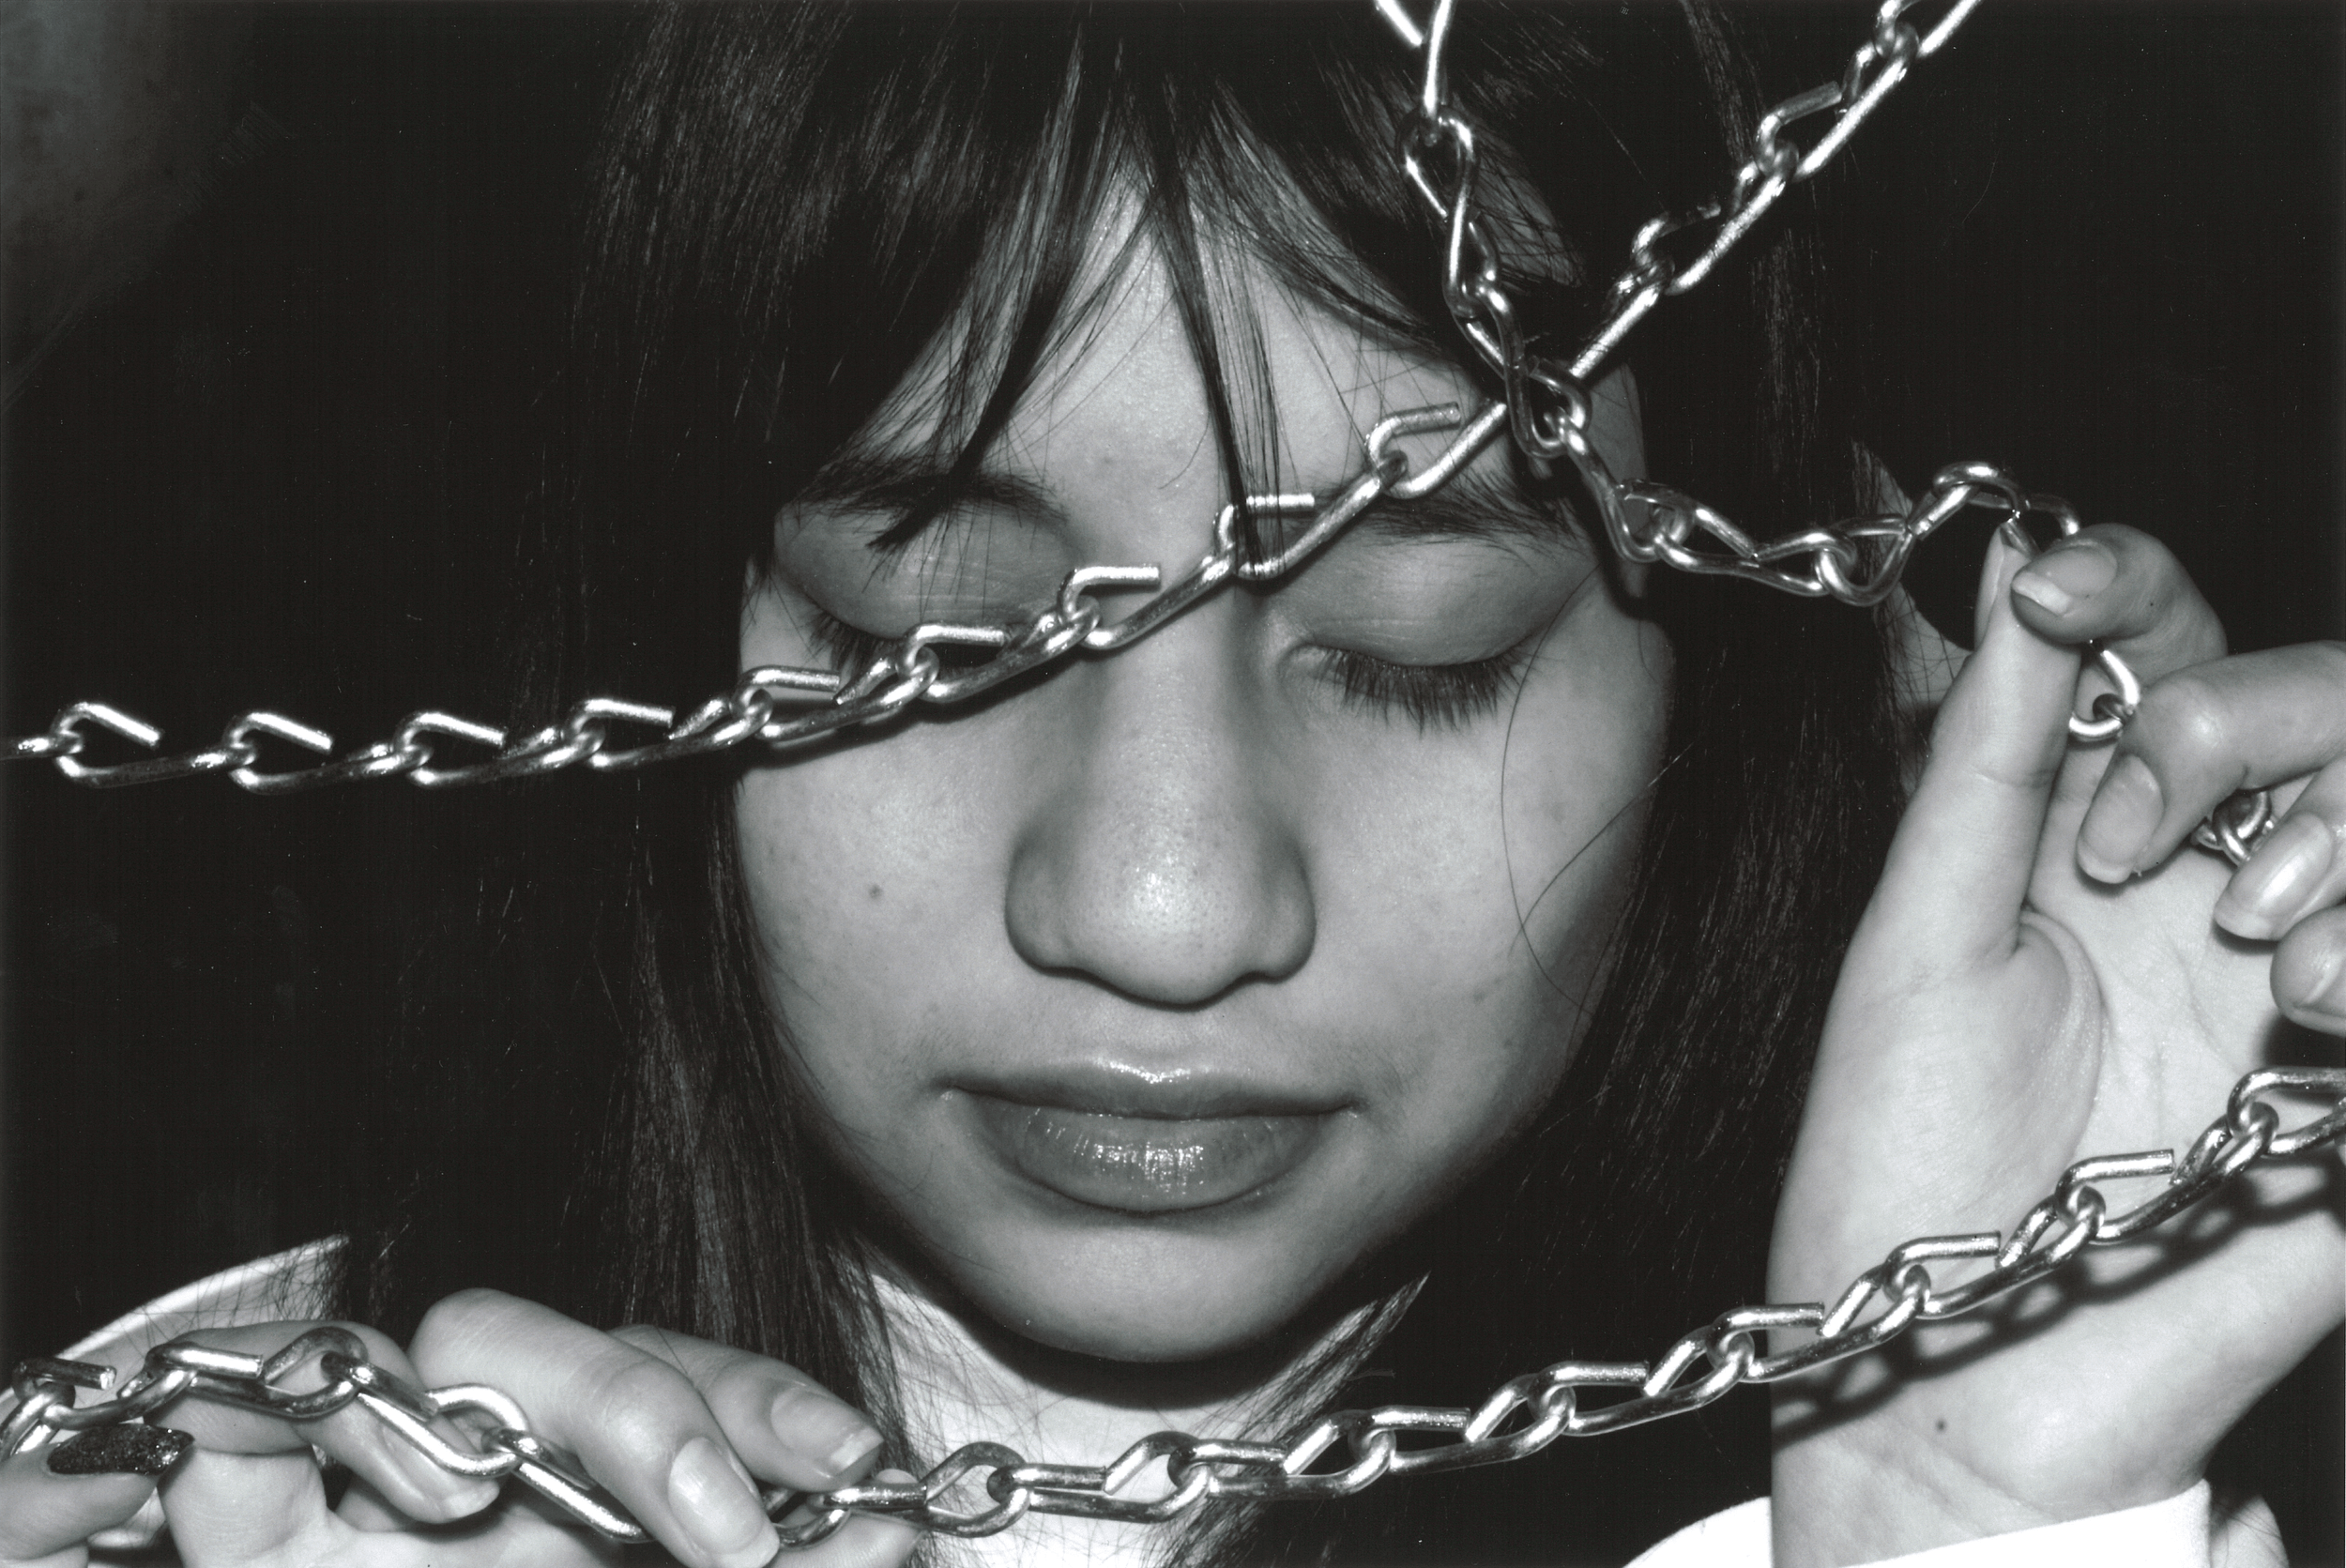 Close-up on a young woman's face framed by linked chains